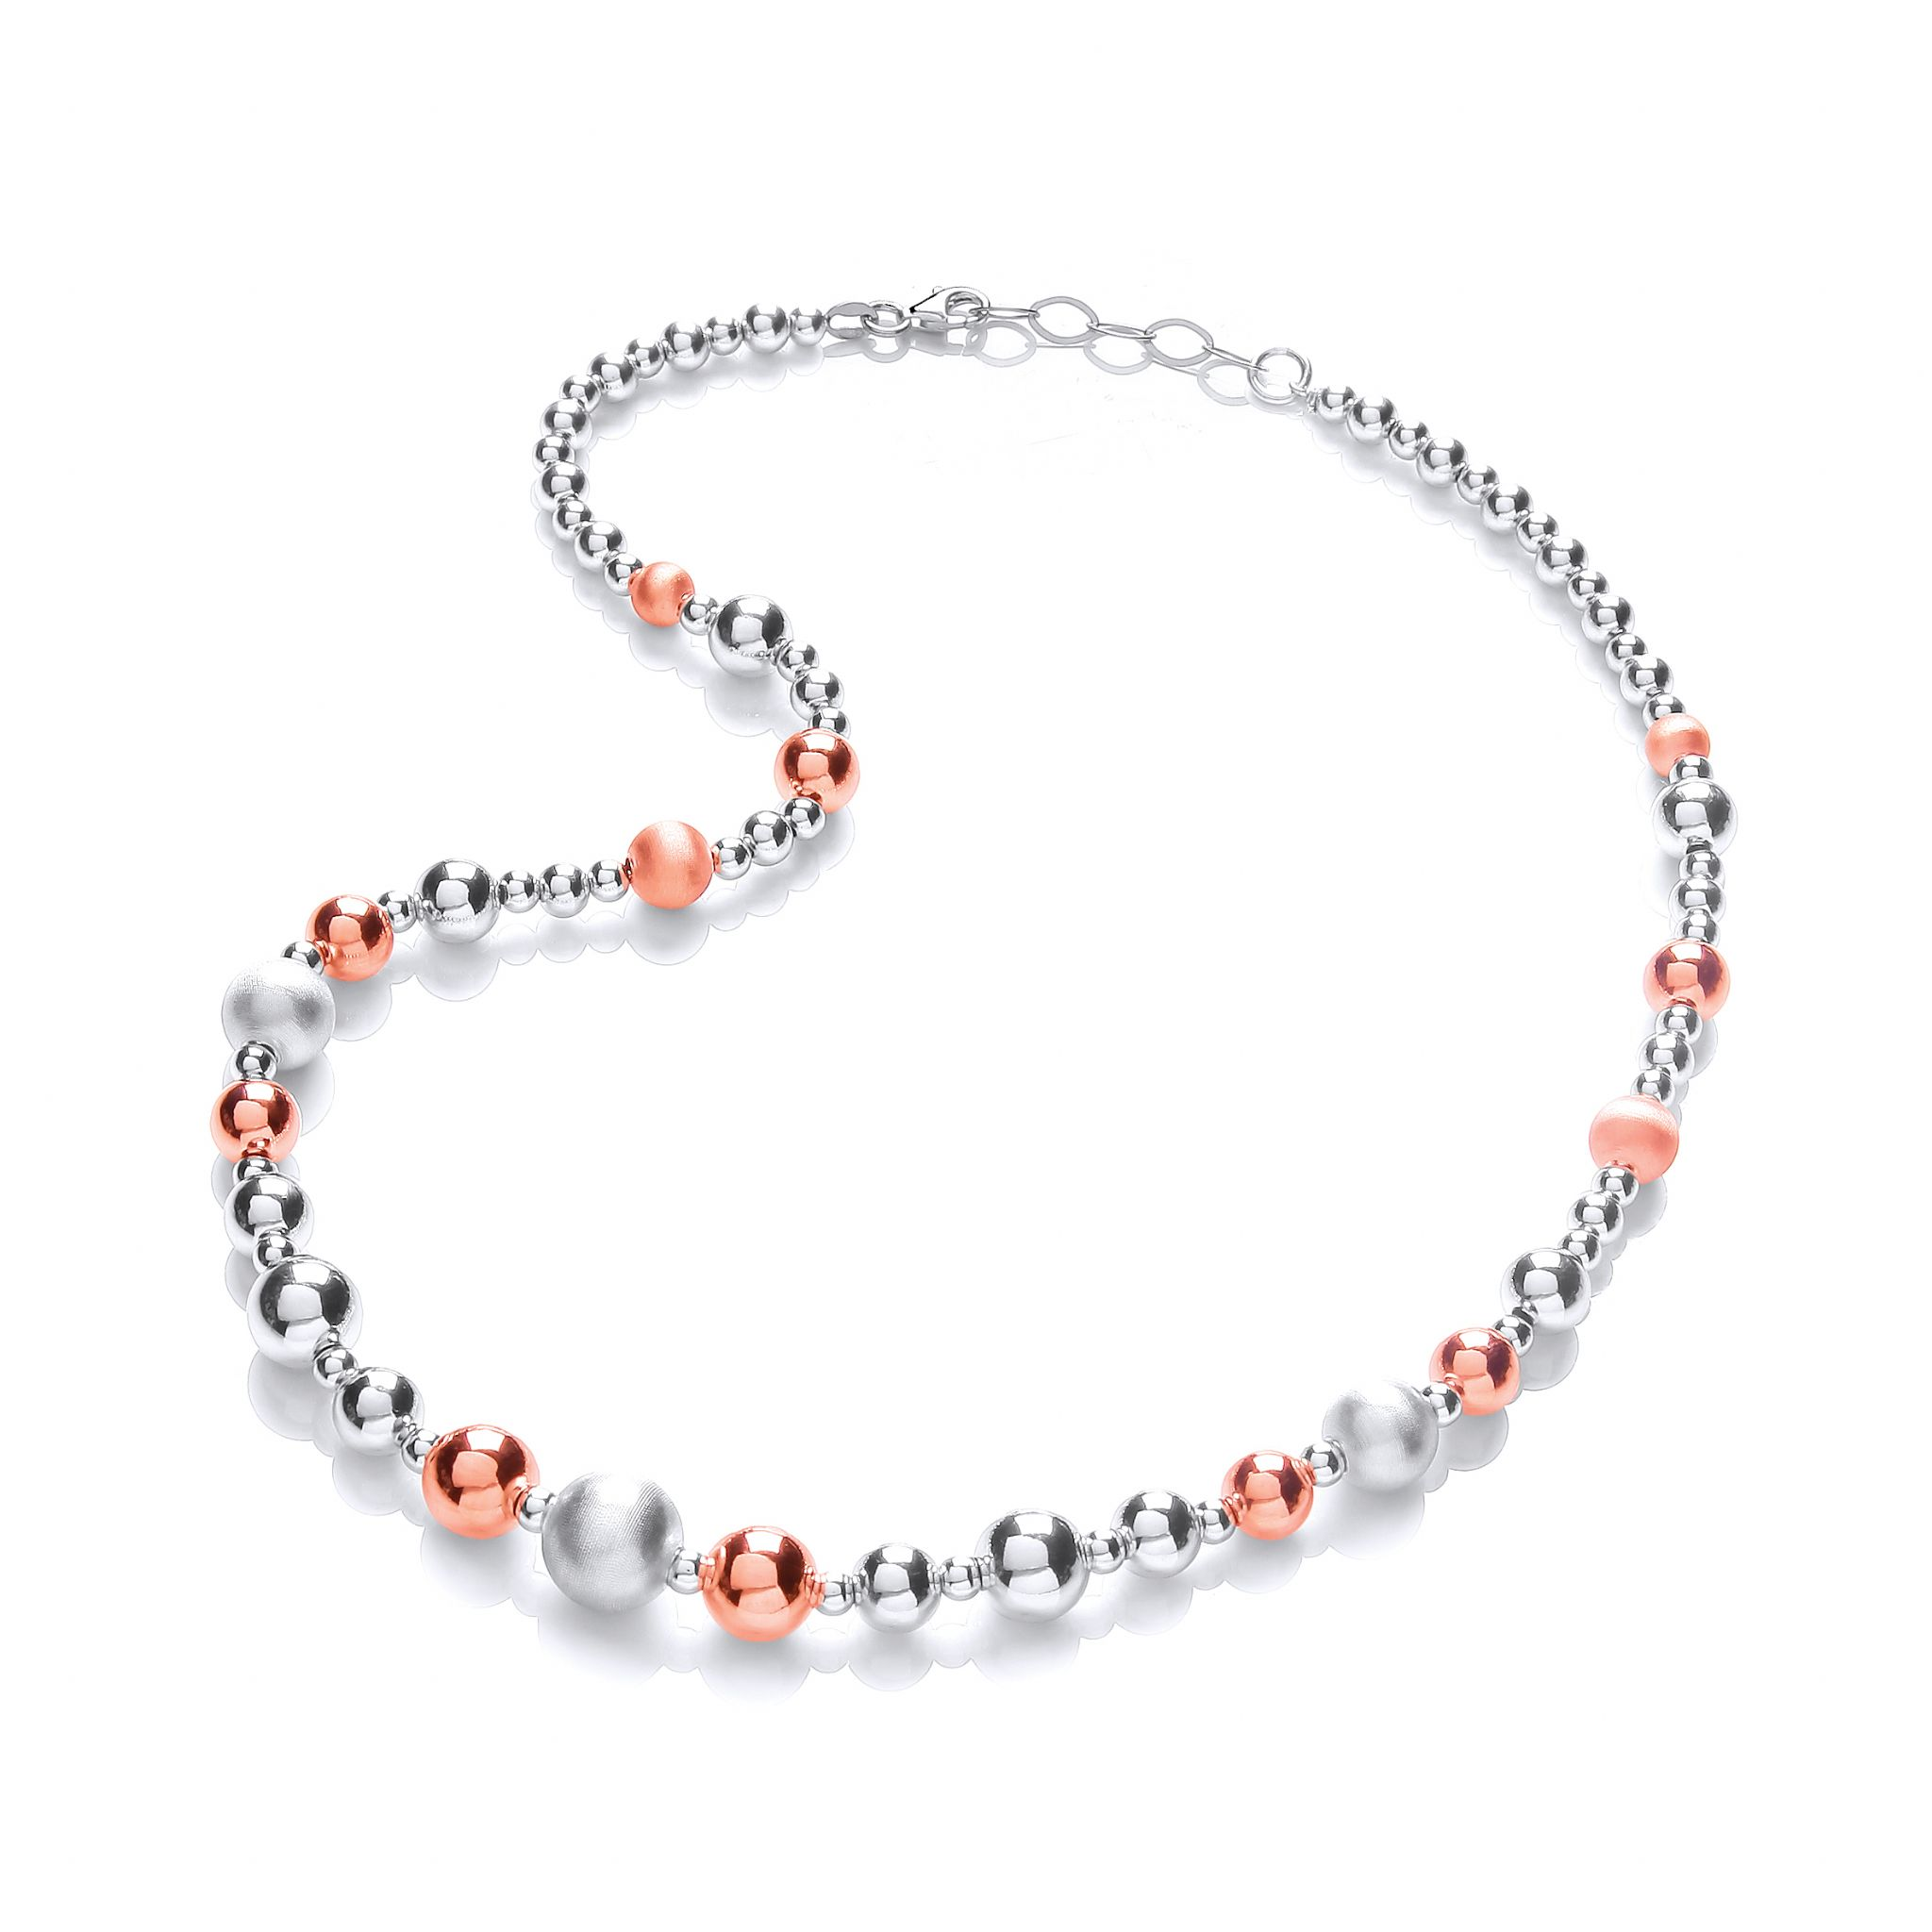 necklace silver designers national malouf beads bead sterling jewelry dian with by signature shop